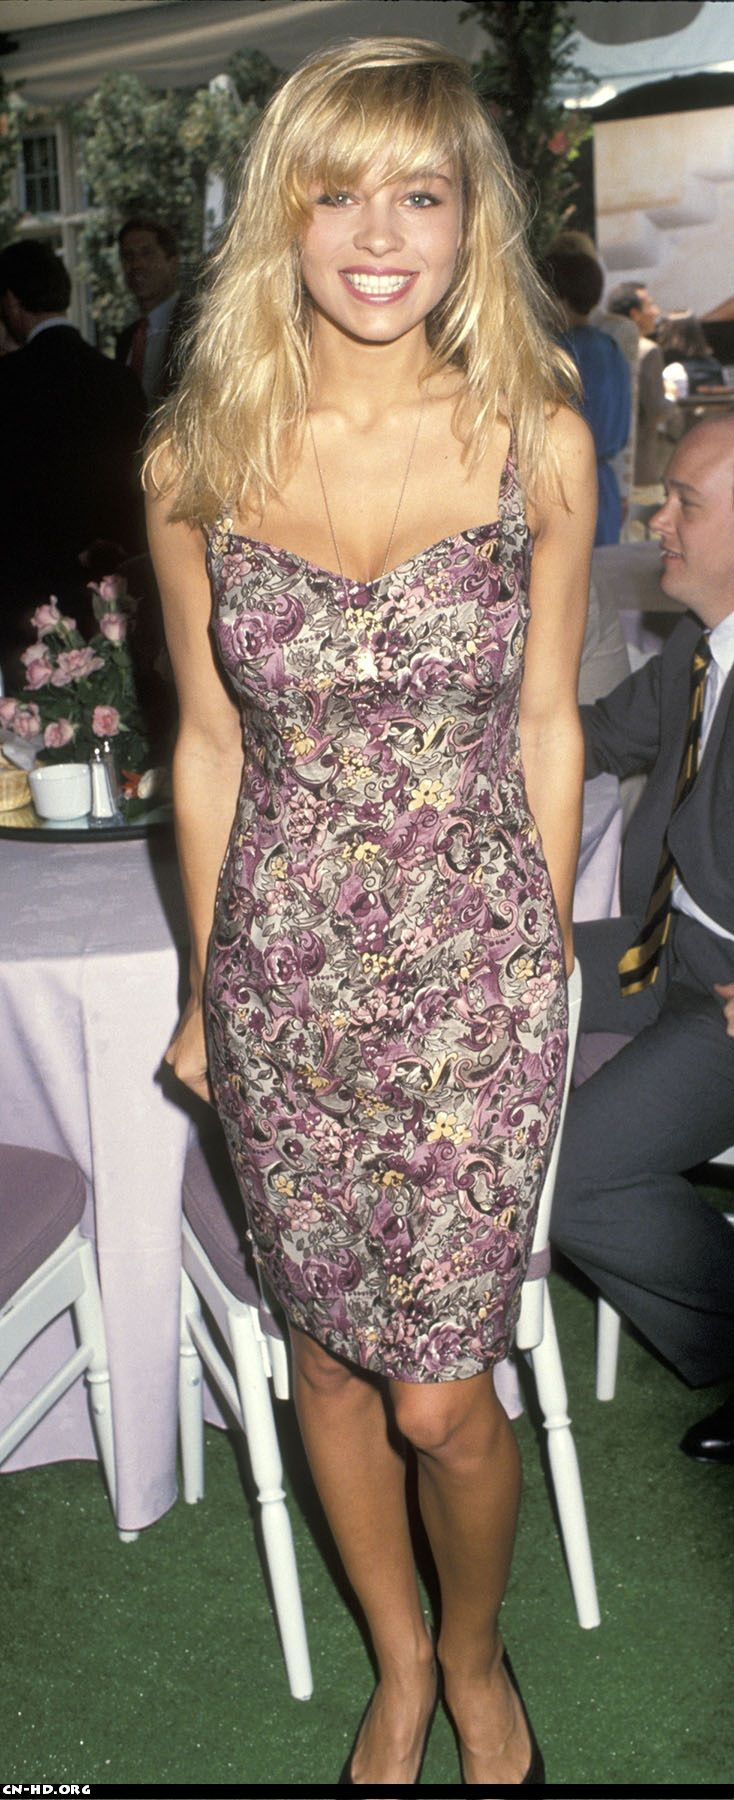 Pamela Anderson before plastic surgery! She was actually pretty at one time